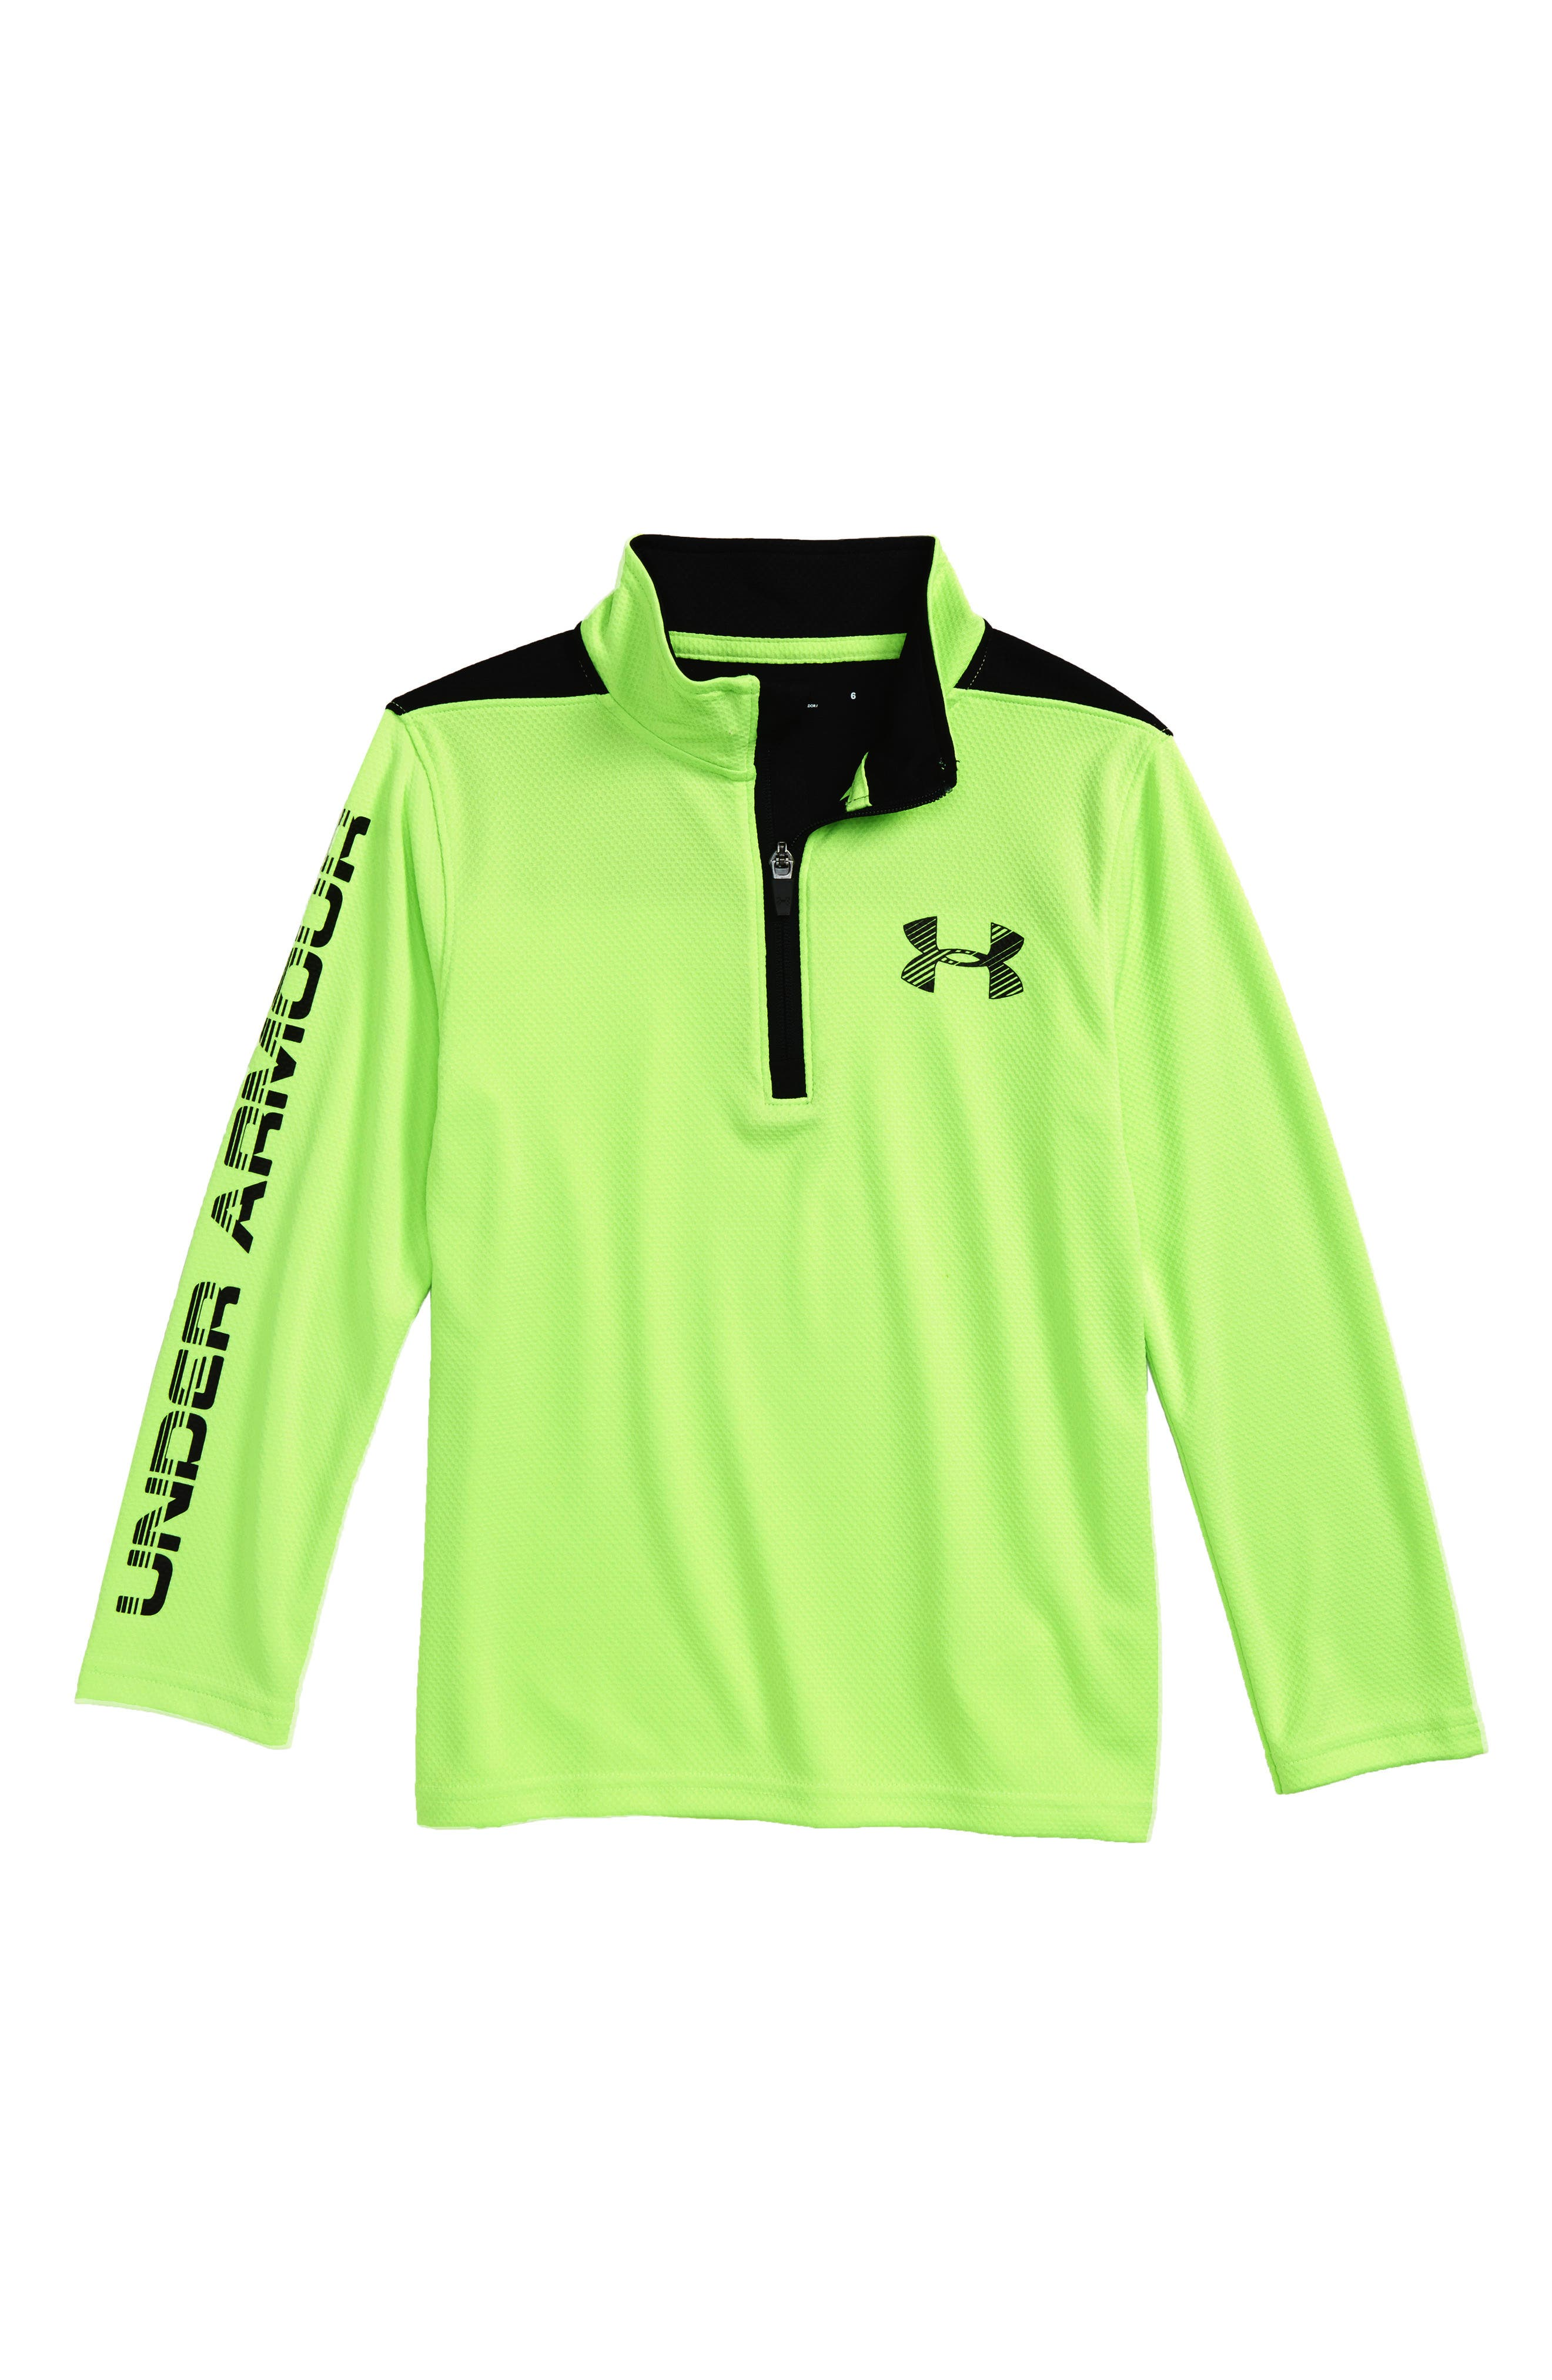 Alternate Image 1 Selected - Under Armour Longevity Quarter Zip Top (Toddler Boys & Little Boys)